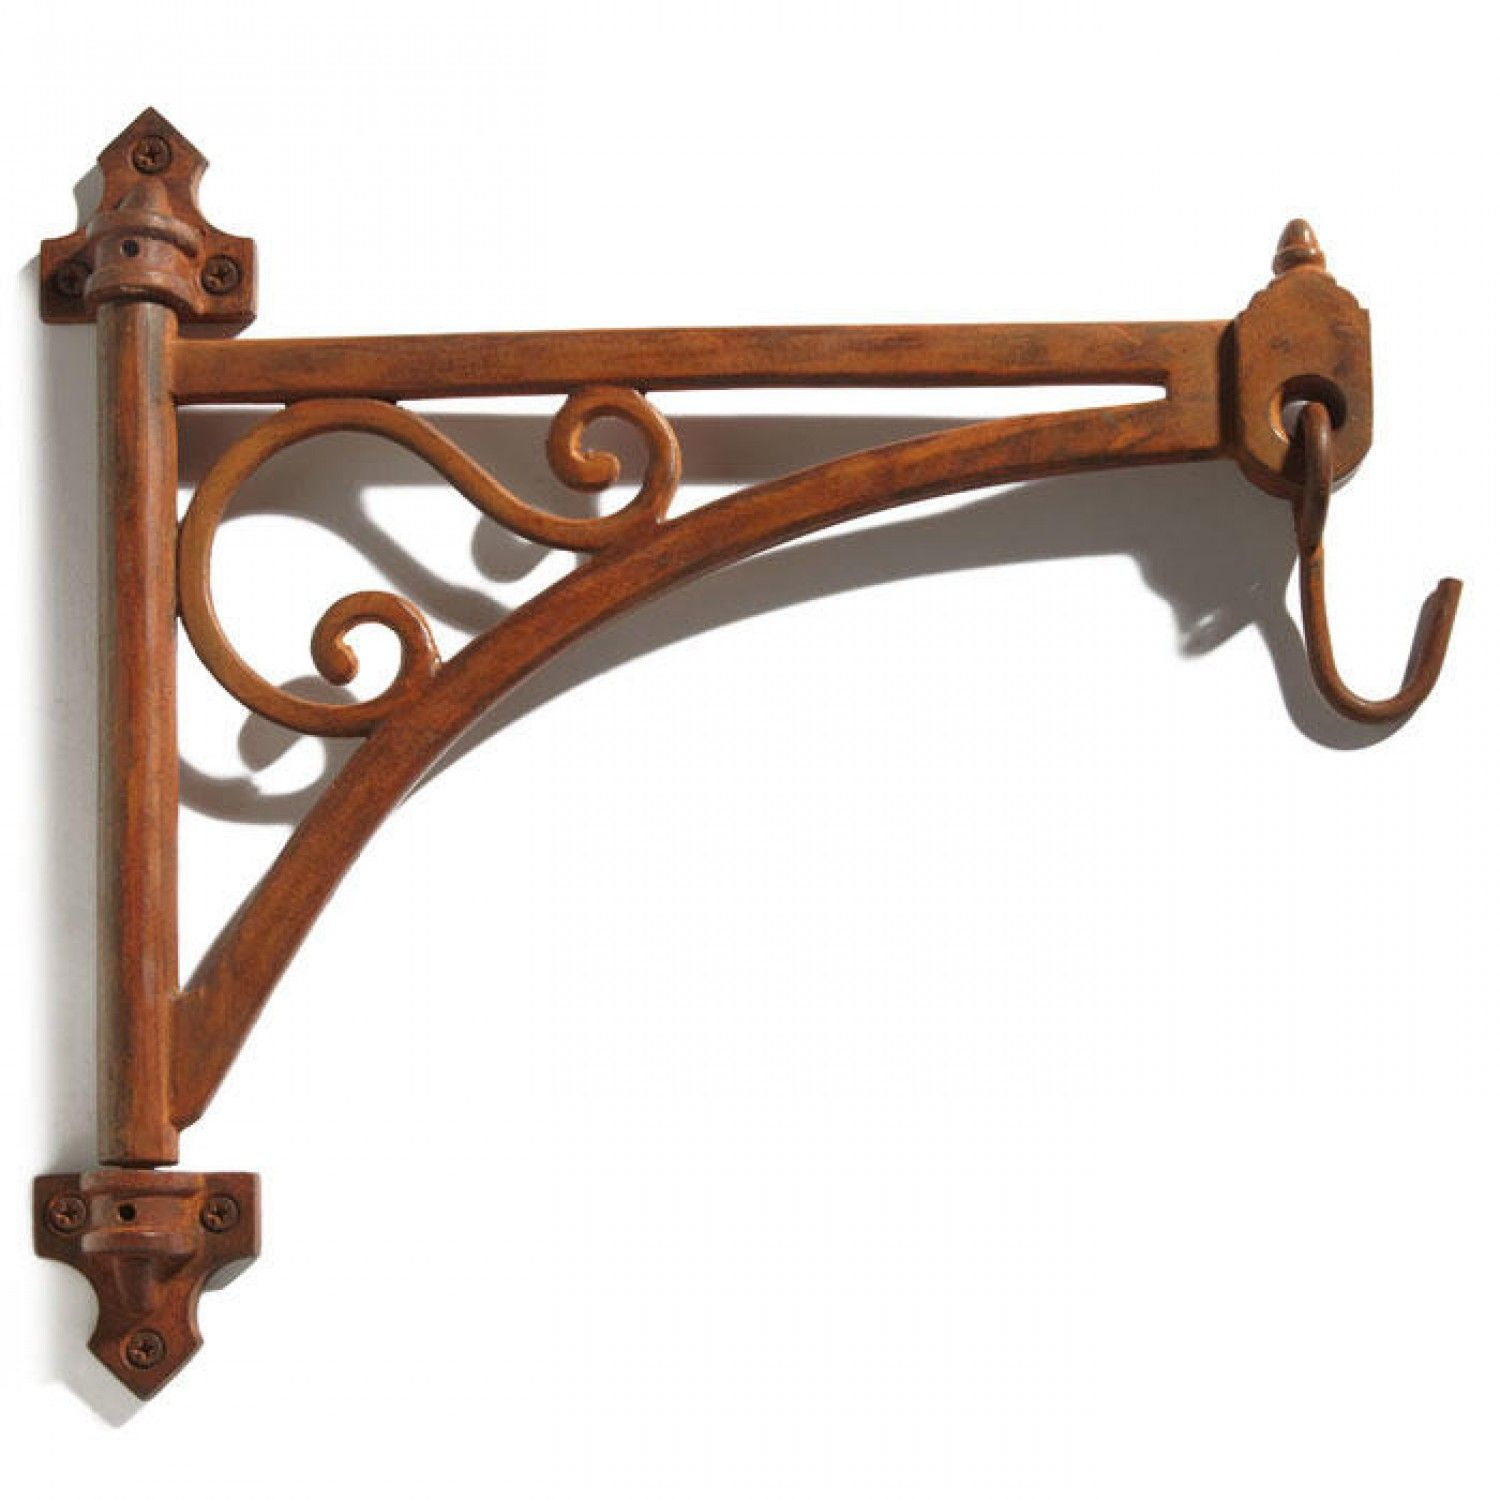 Victorian Cast Iron Hanging Plant Bracket With Swivel Swing Arm